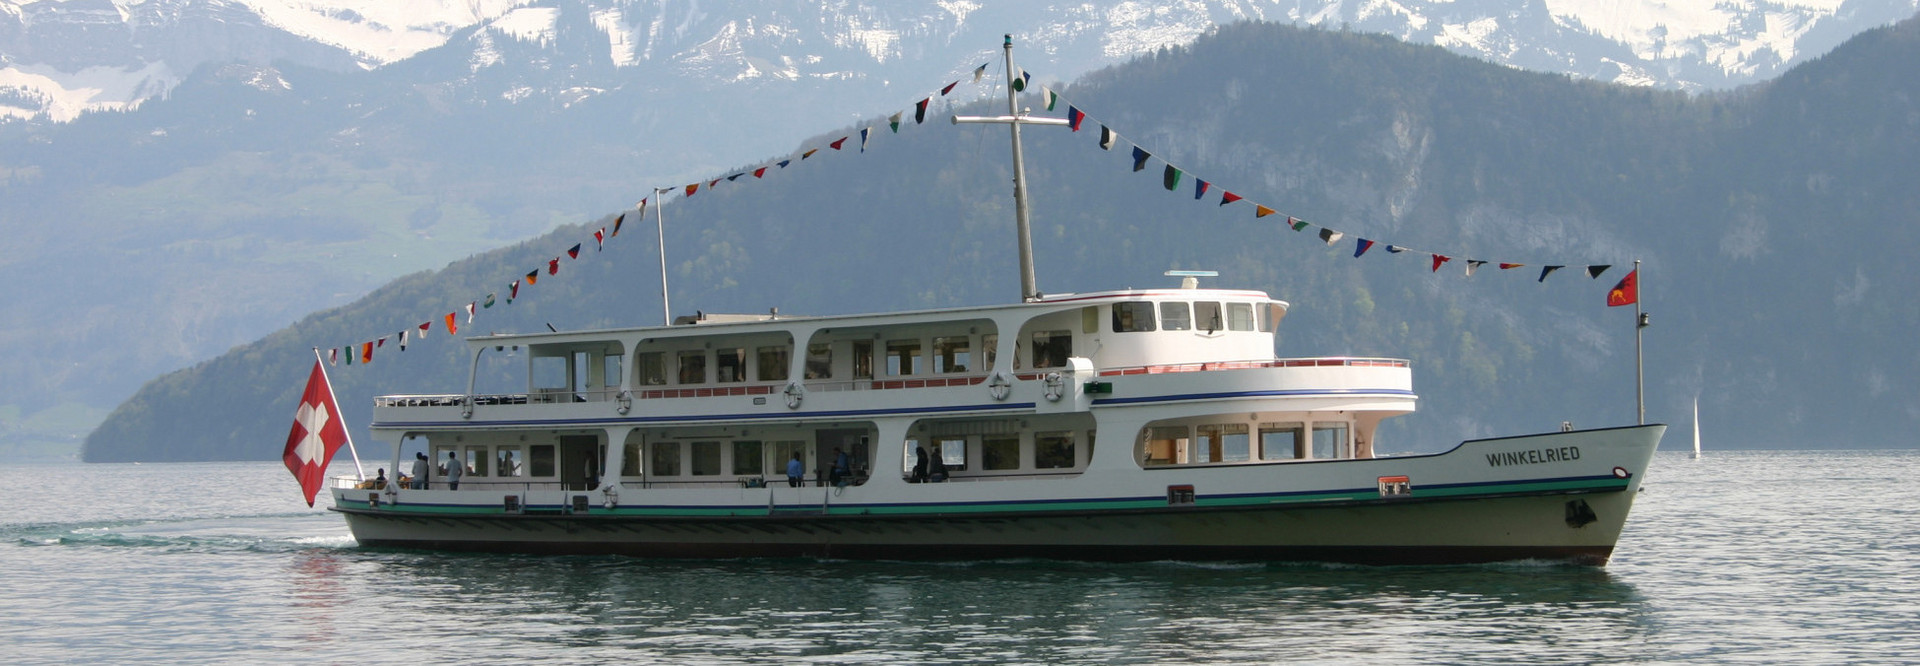 During a cruise on Lake Lucerne, fixed flags adorn the motor ship Winkelried.